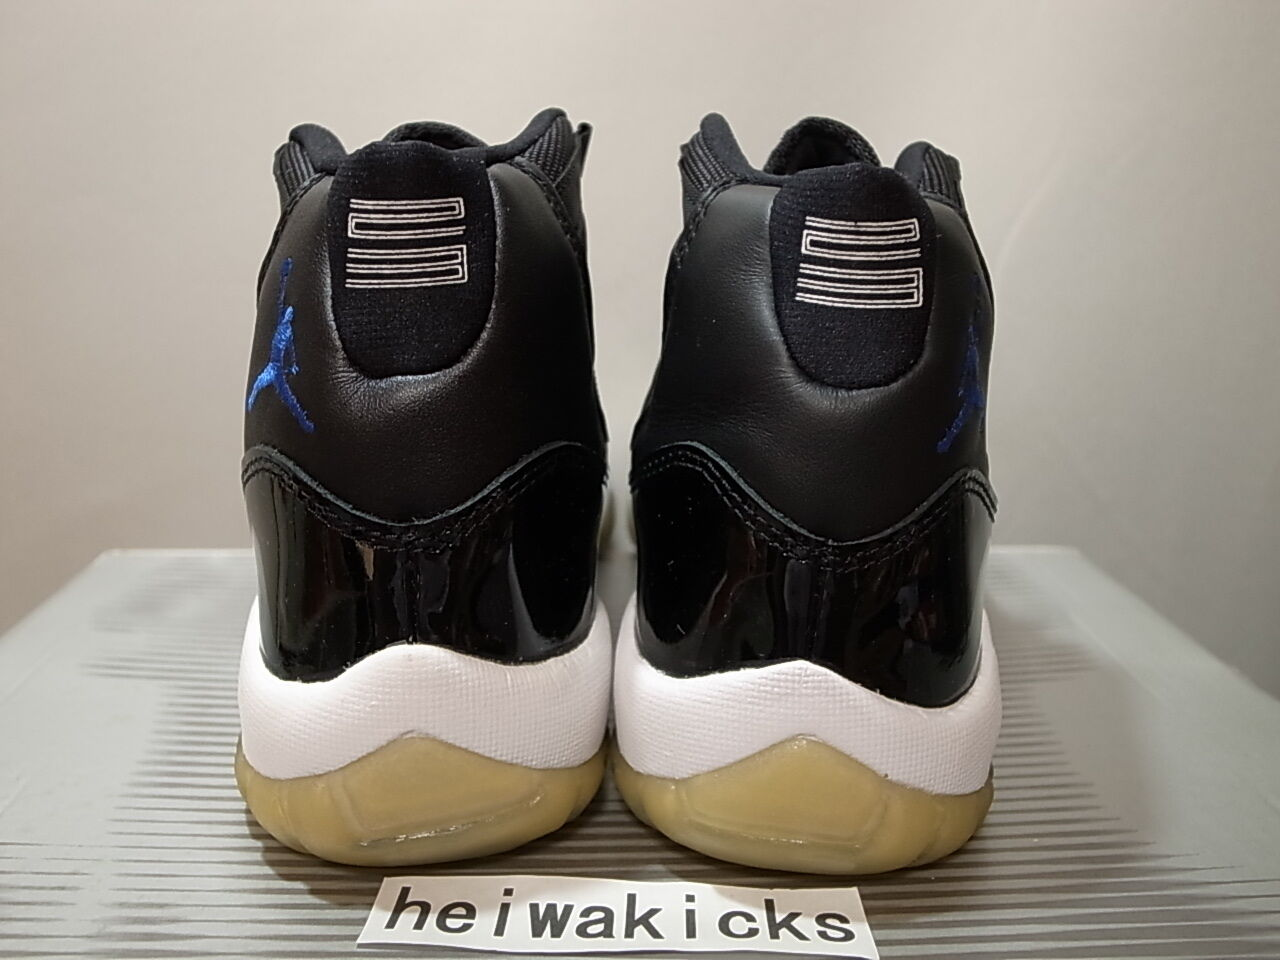 2000 11 nike air jordan 11 2000 xi retro space jam schwarz uni royal 136046-041 sz 7.5 802b6f